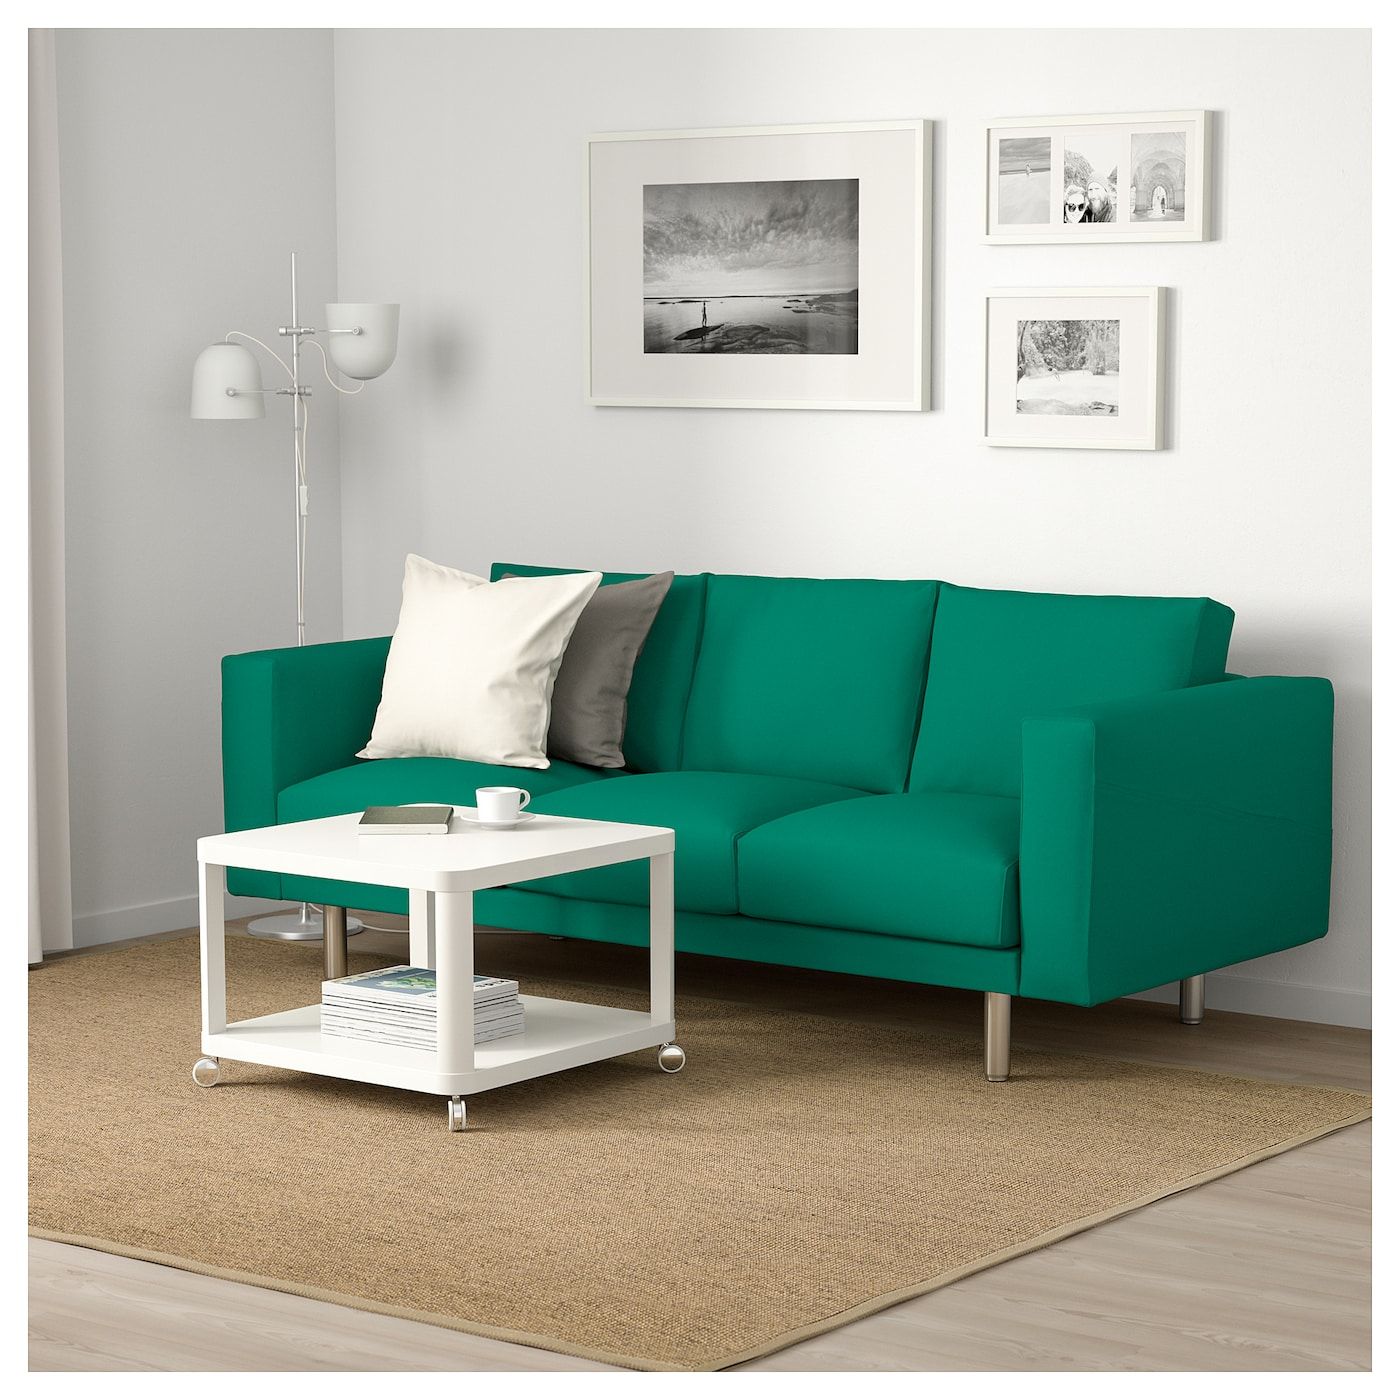 Norsborg 3 seat sofa gr sbo bright green metal ikea for Ikea couch planer